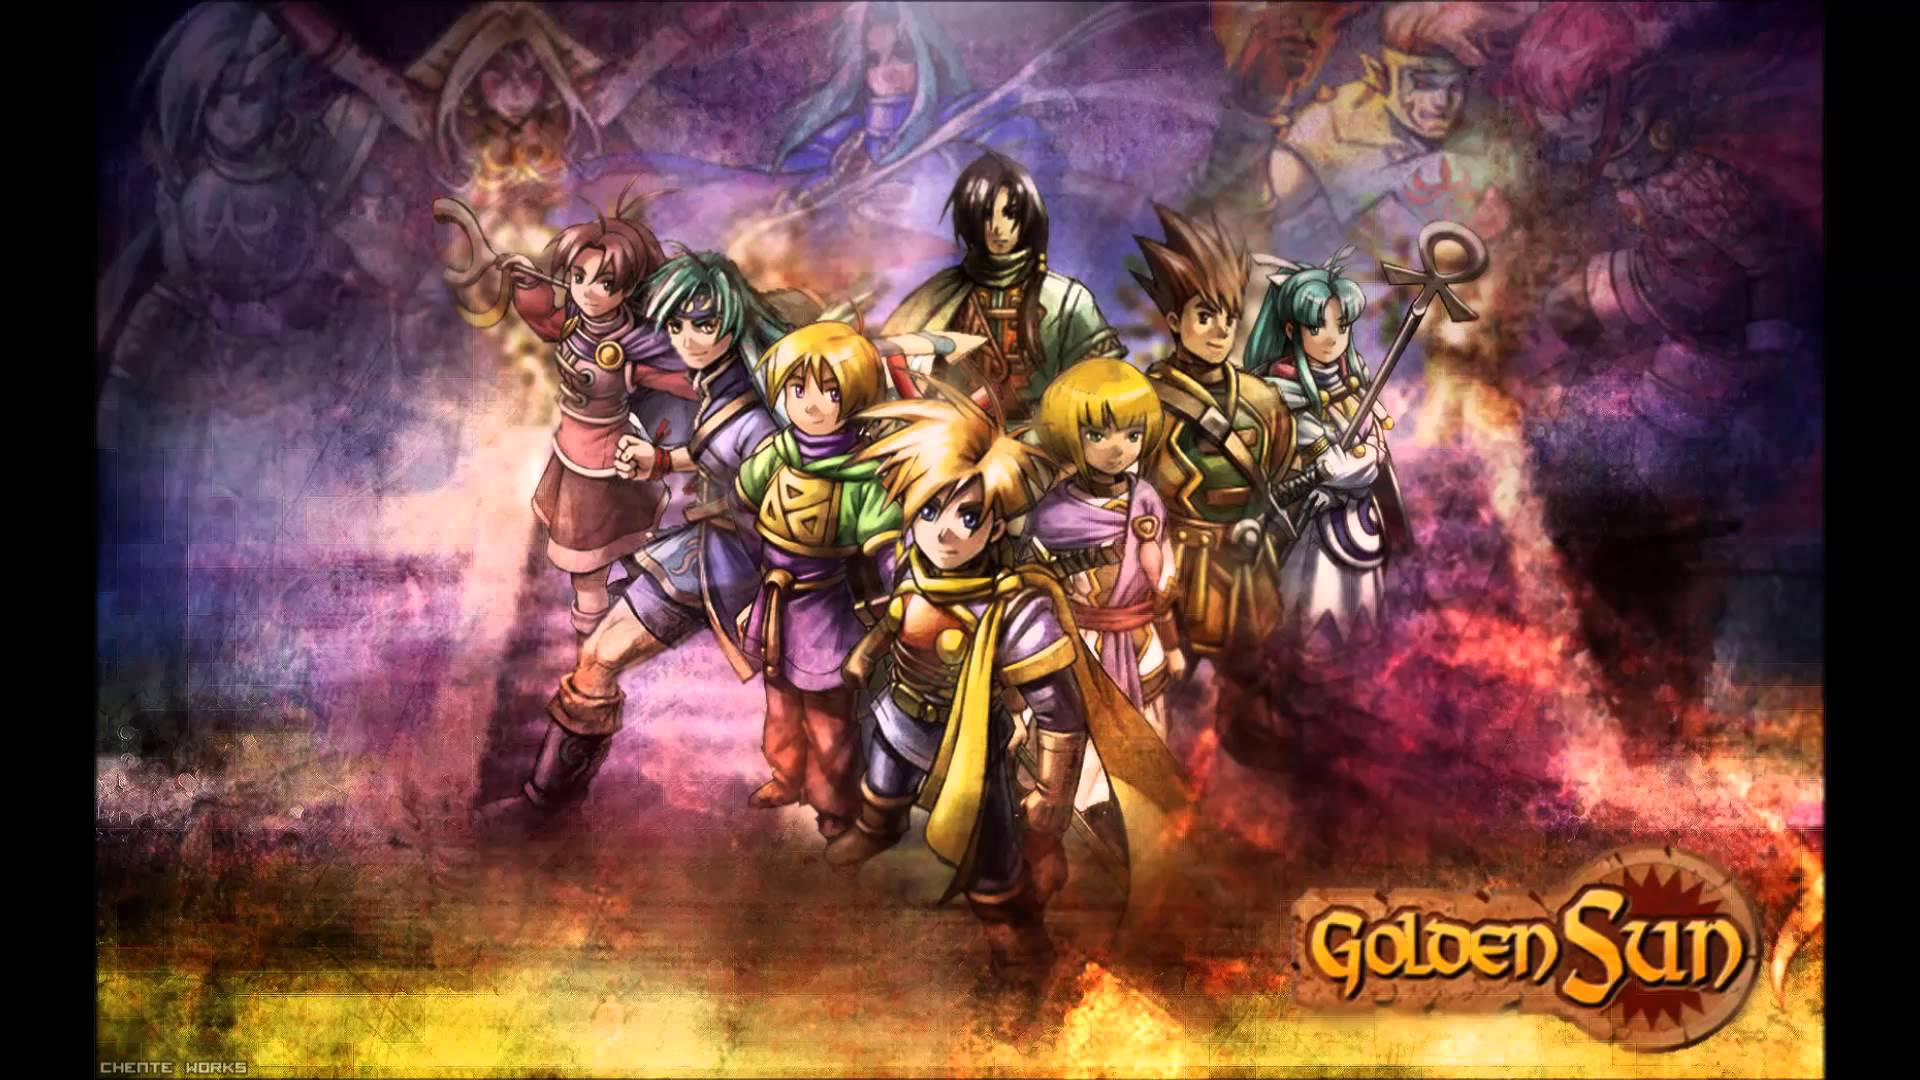 Golden Sun Wallpapers (p 579-TB) - ZHongyaoDQT